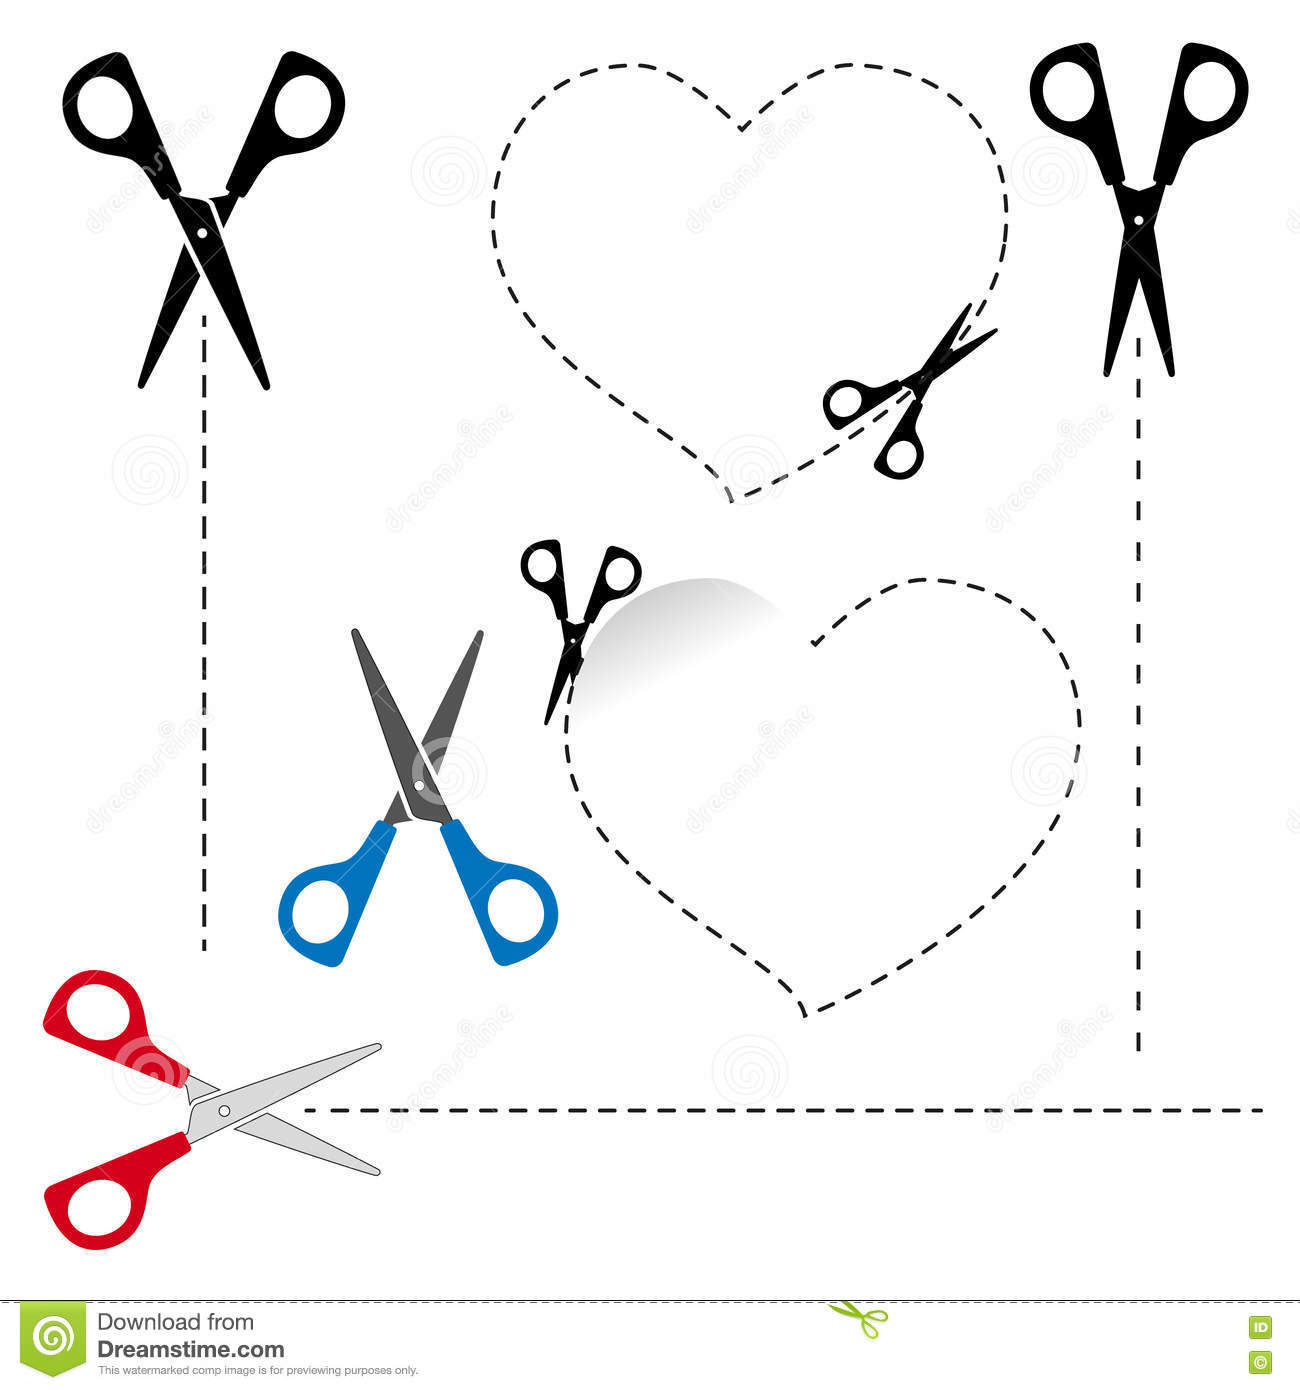 Scissors Cut Out The Shape The Dotted Line Stock Vector